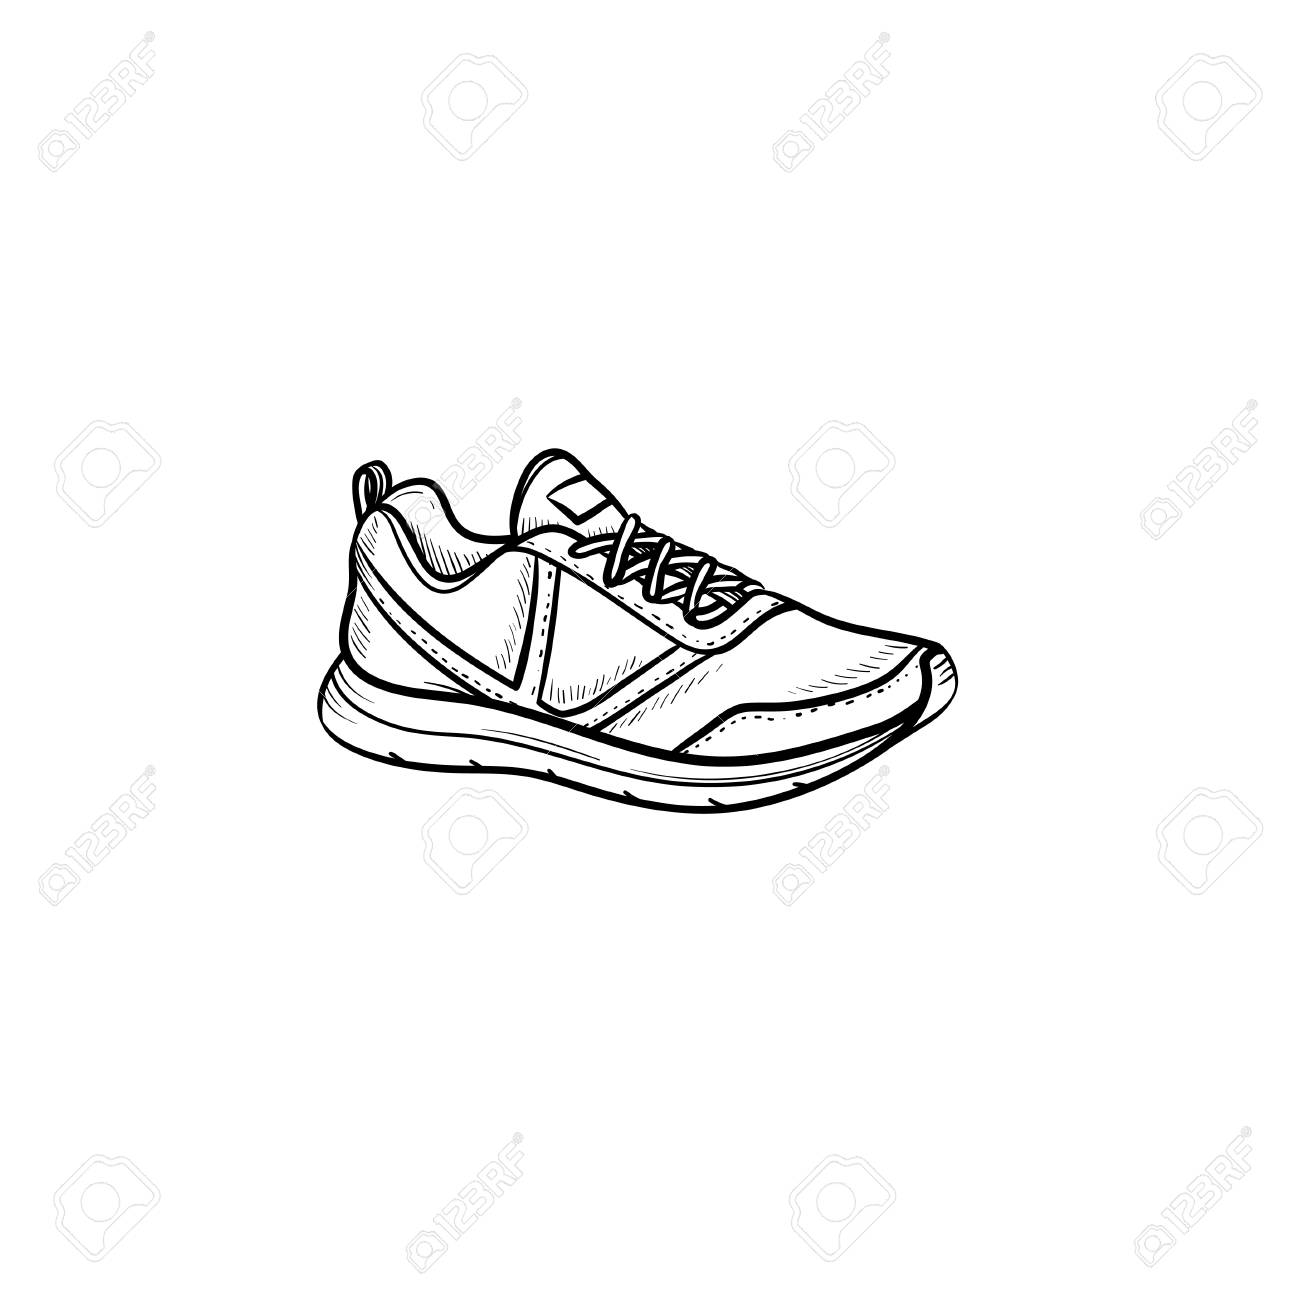 Doodle Outline IconSport Drawn SneakerRunning Hand Shoe N8wOXZnP0k